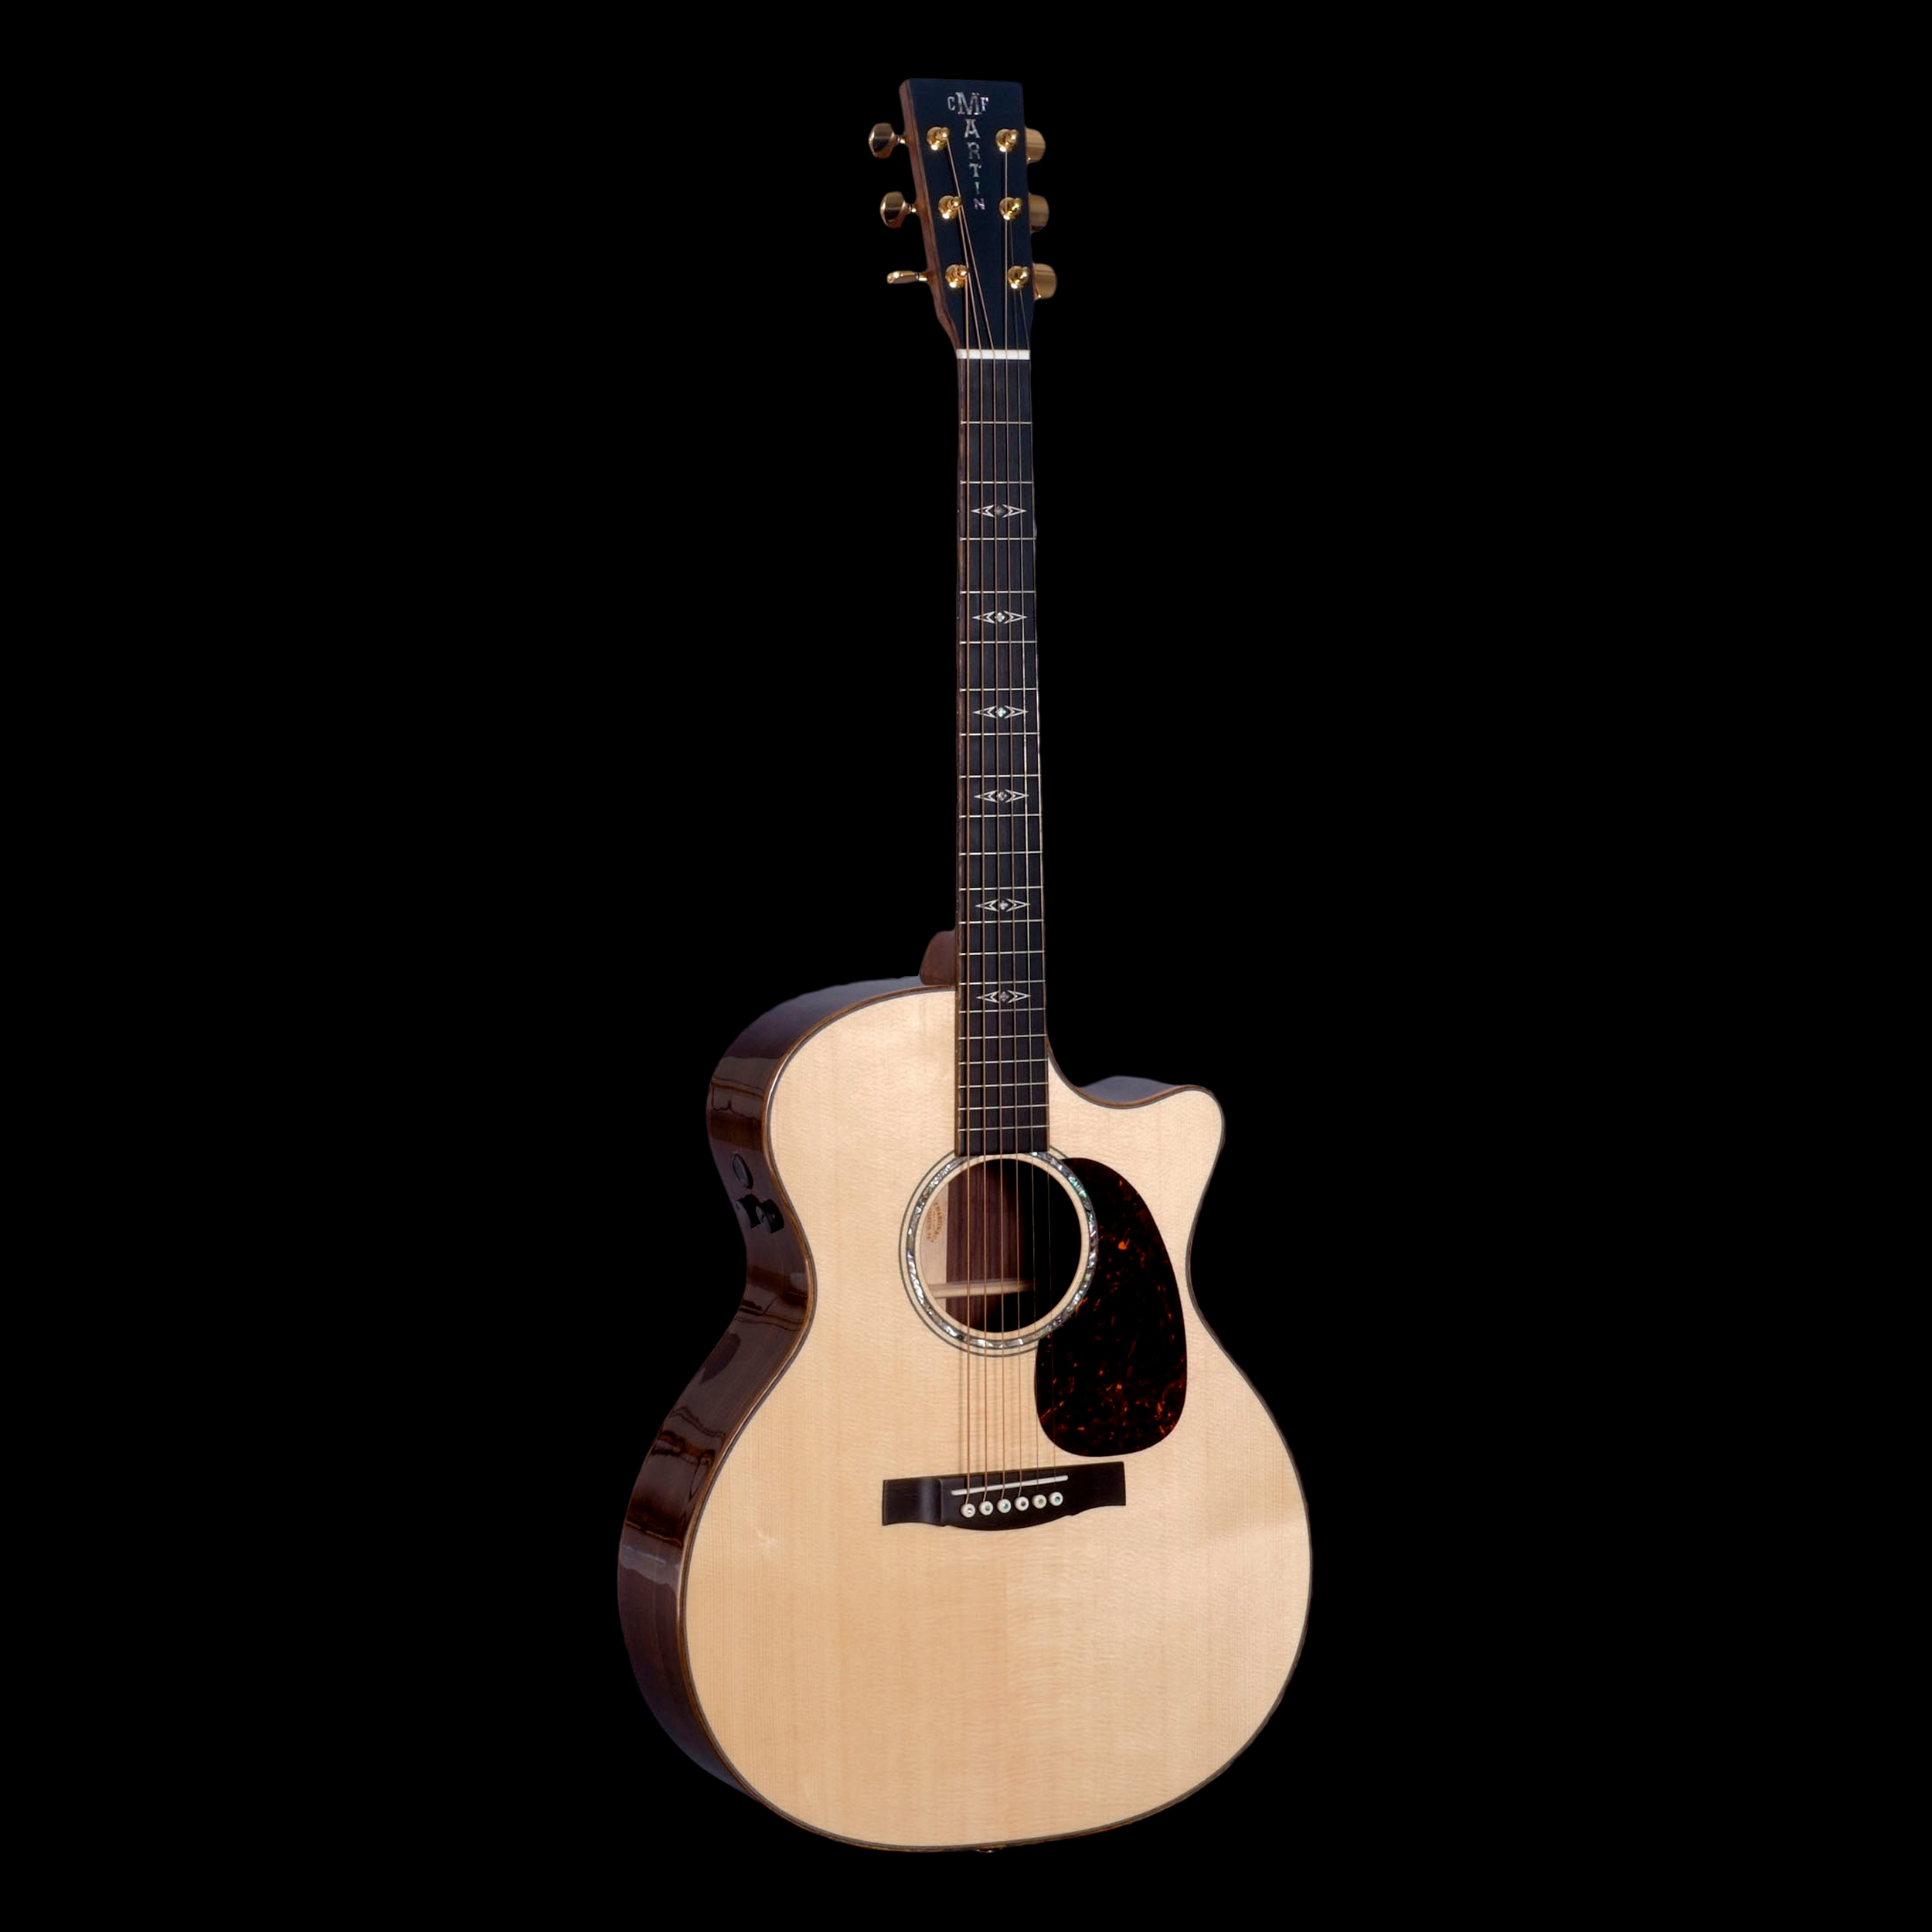 martin gpcpa1 plus performing artist series acoustic electric guitar 729789400305 ebay. Black Bedroom Furniture Sets. Home Design Ideas